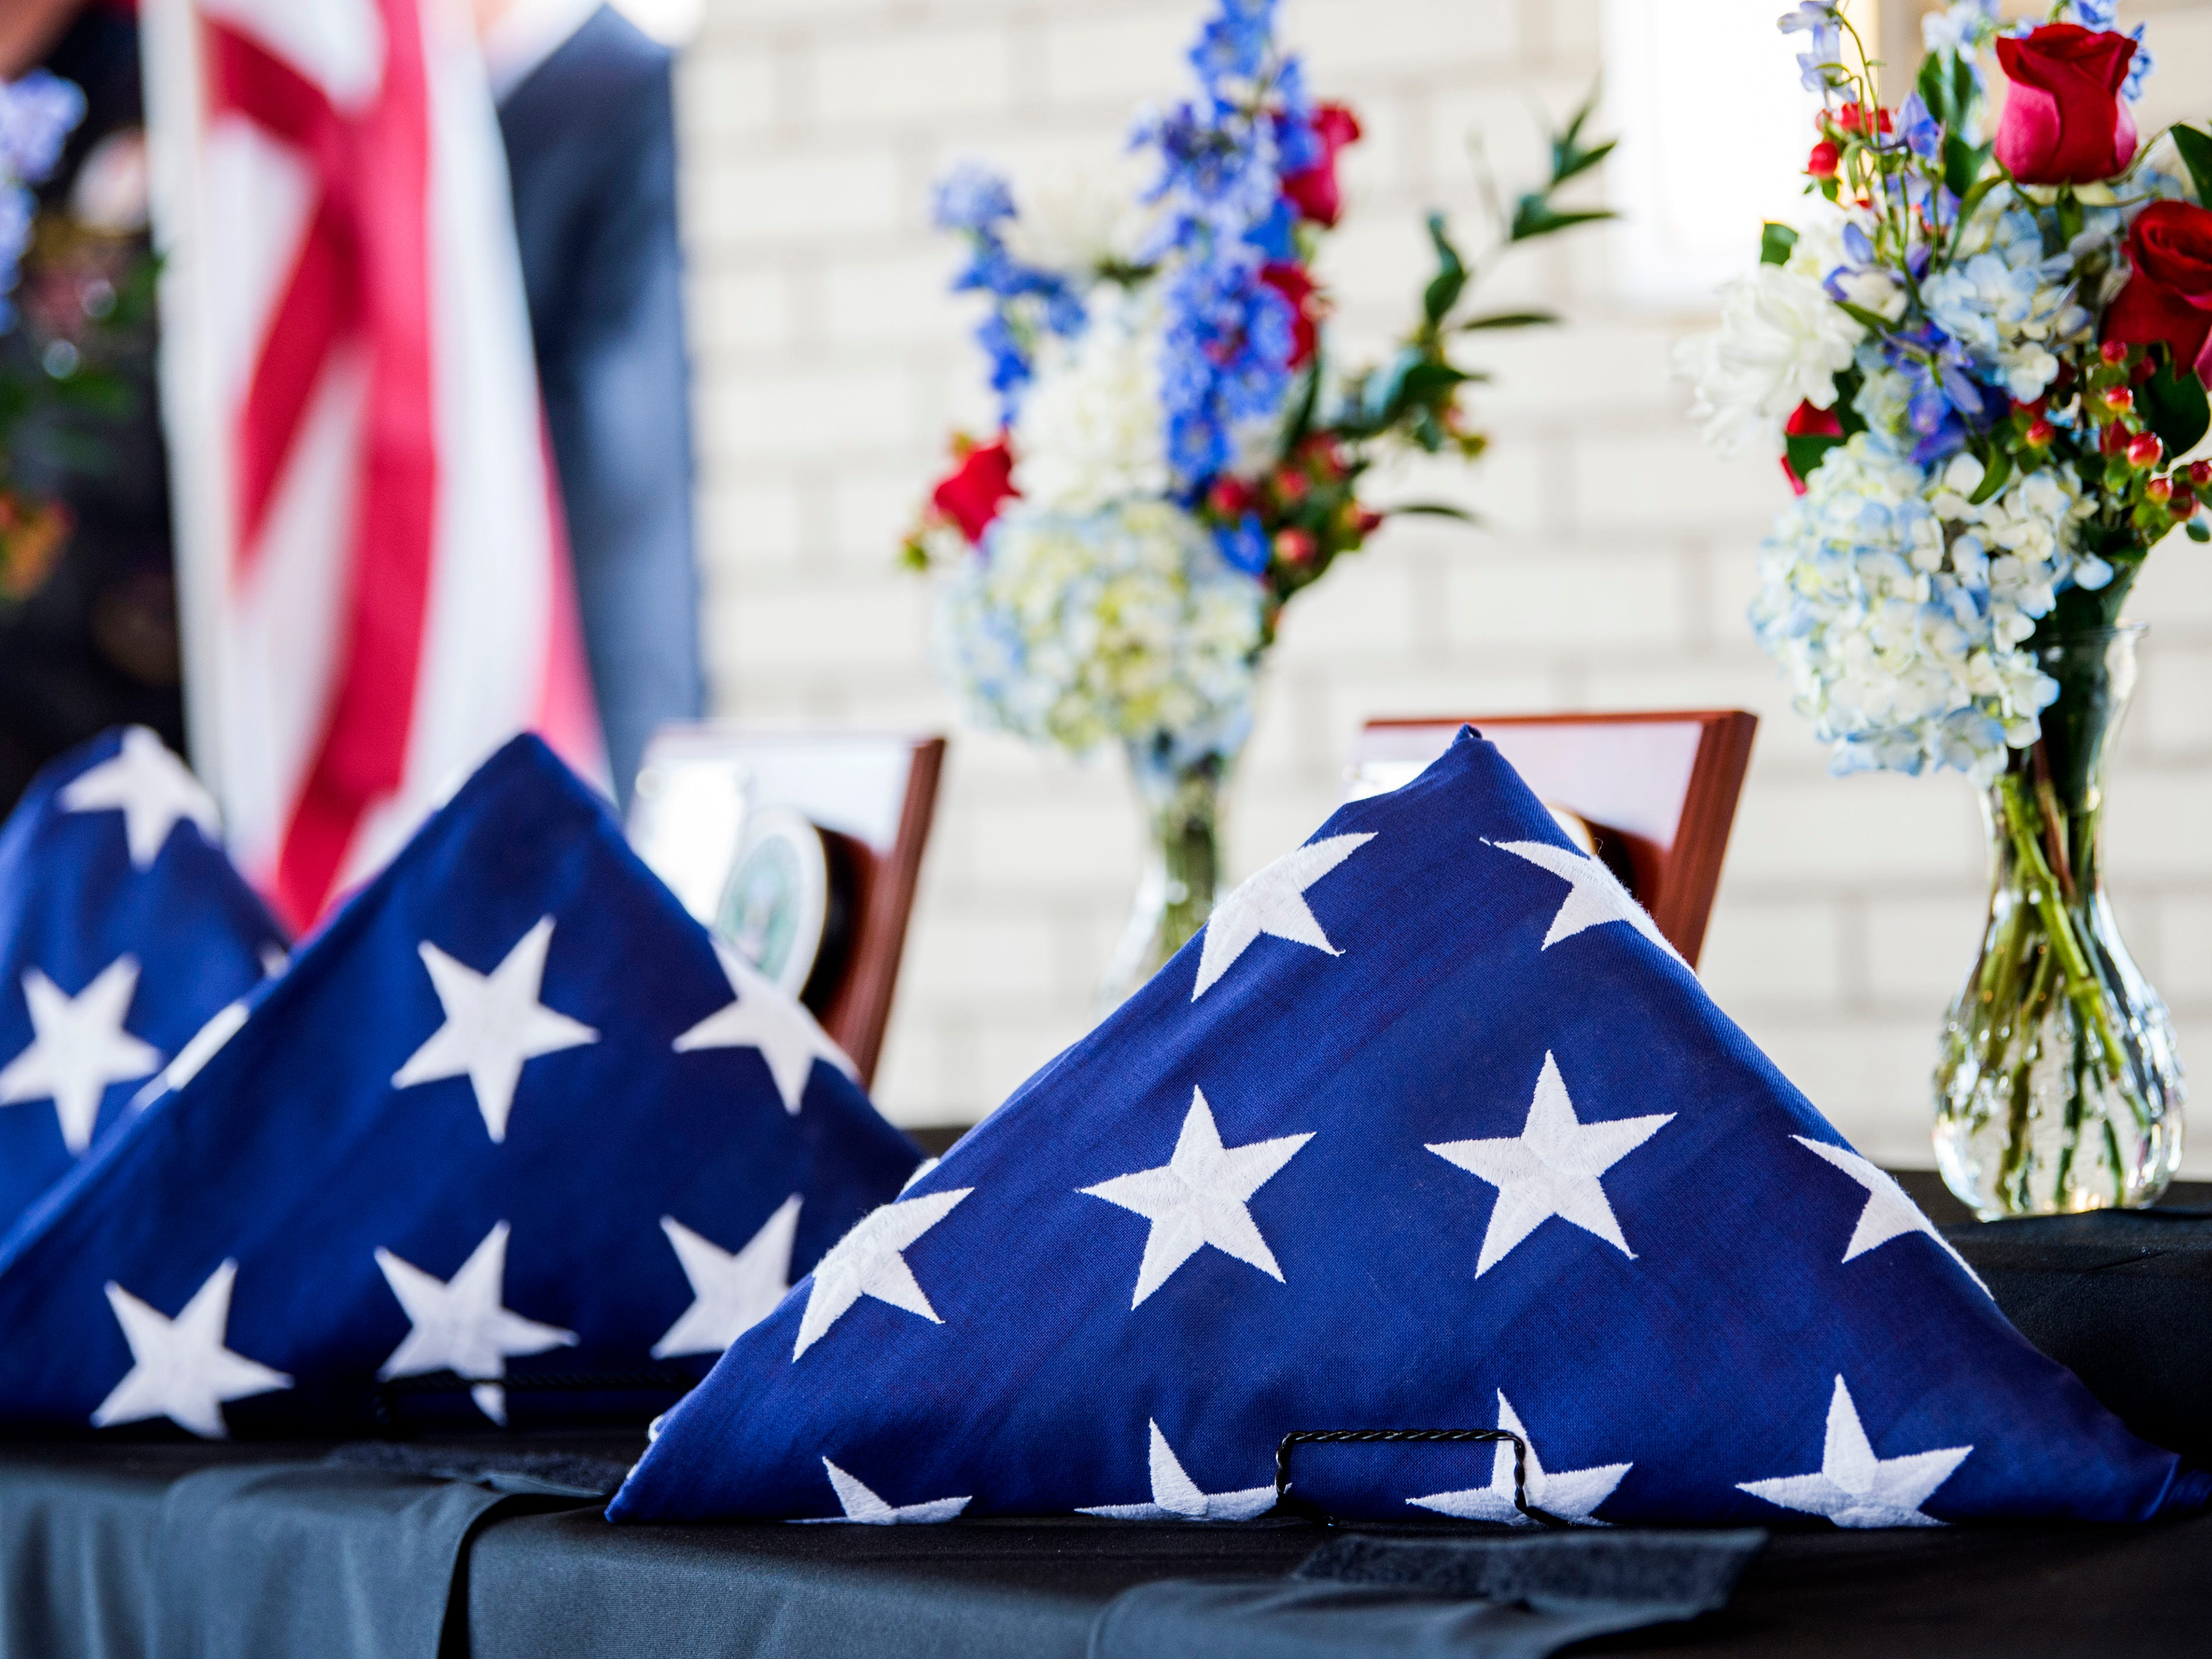 Folded flags were presented for each of the seven veterans buried during a military memorial service at the East Tennessee Veterans Cemetery on Gov. John Sevier Highway on Tuesday, February 5, 2019.